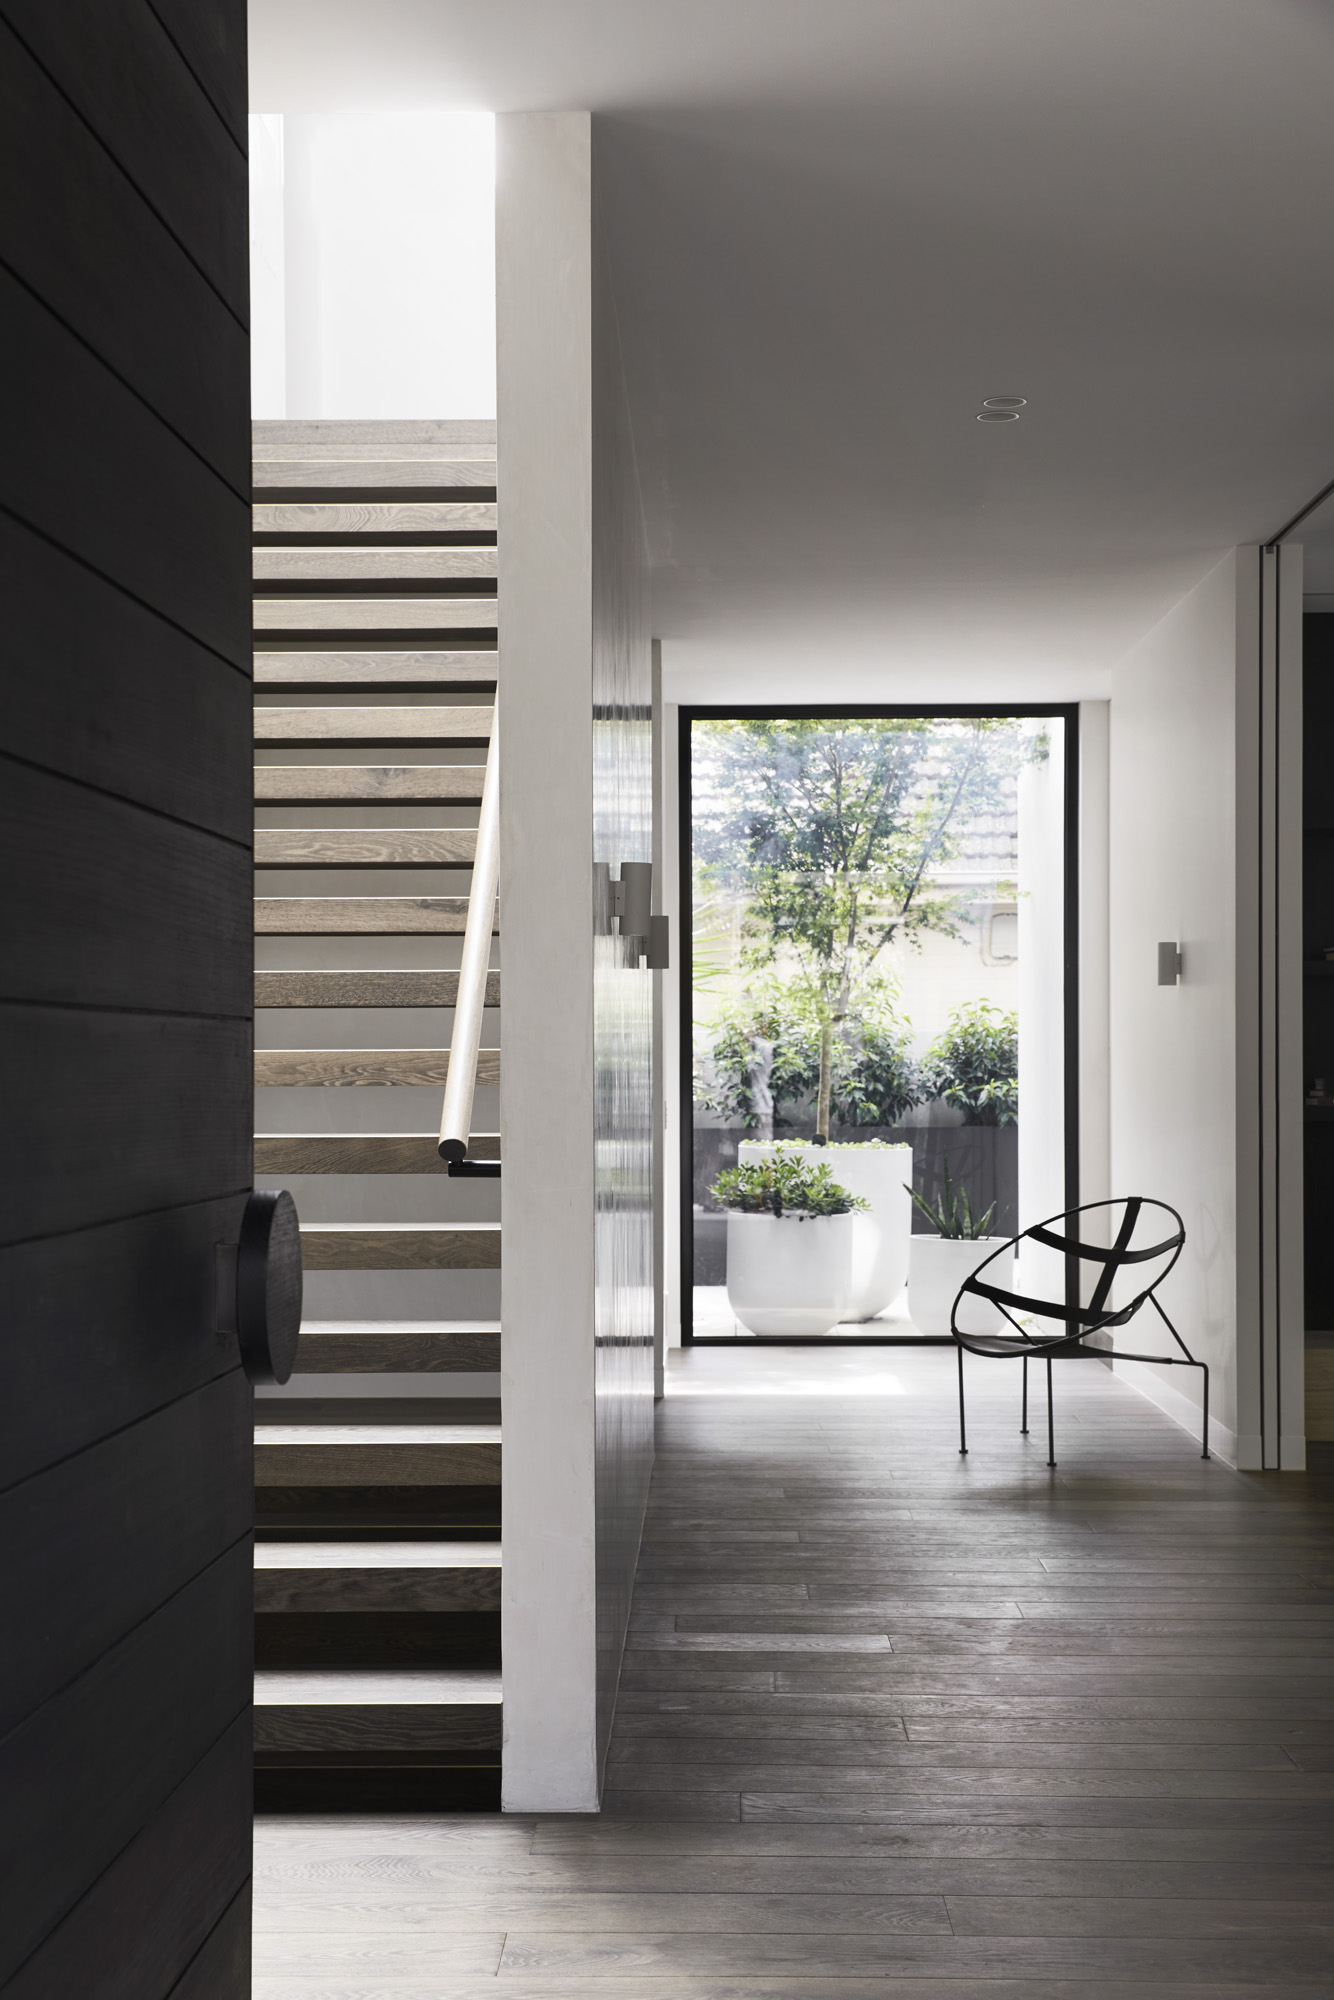 Gallery Of Brighton Residence By Studio Tate Local Australian Interiors & Bespoke Design Brighton, Melbourne Image 11